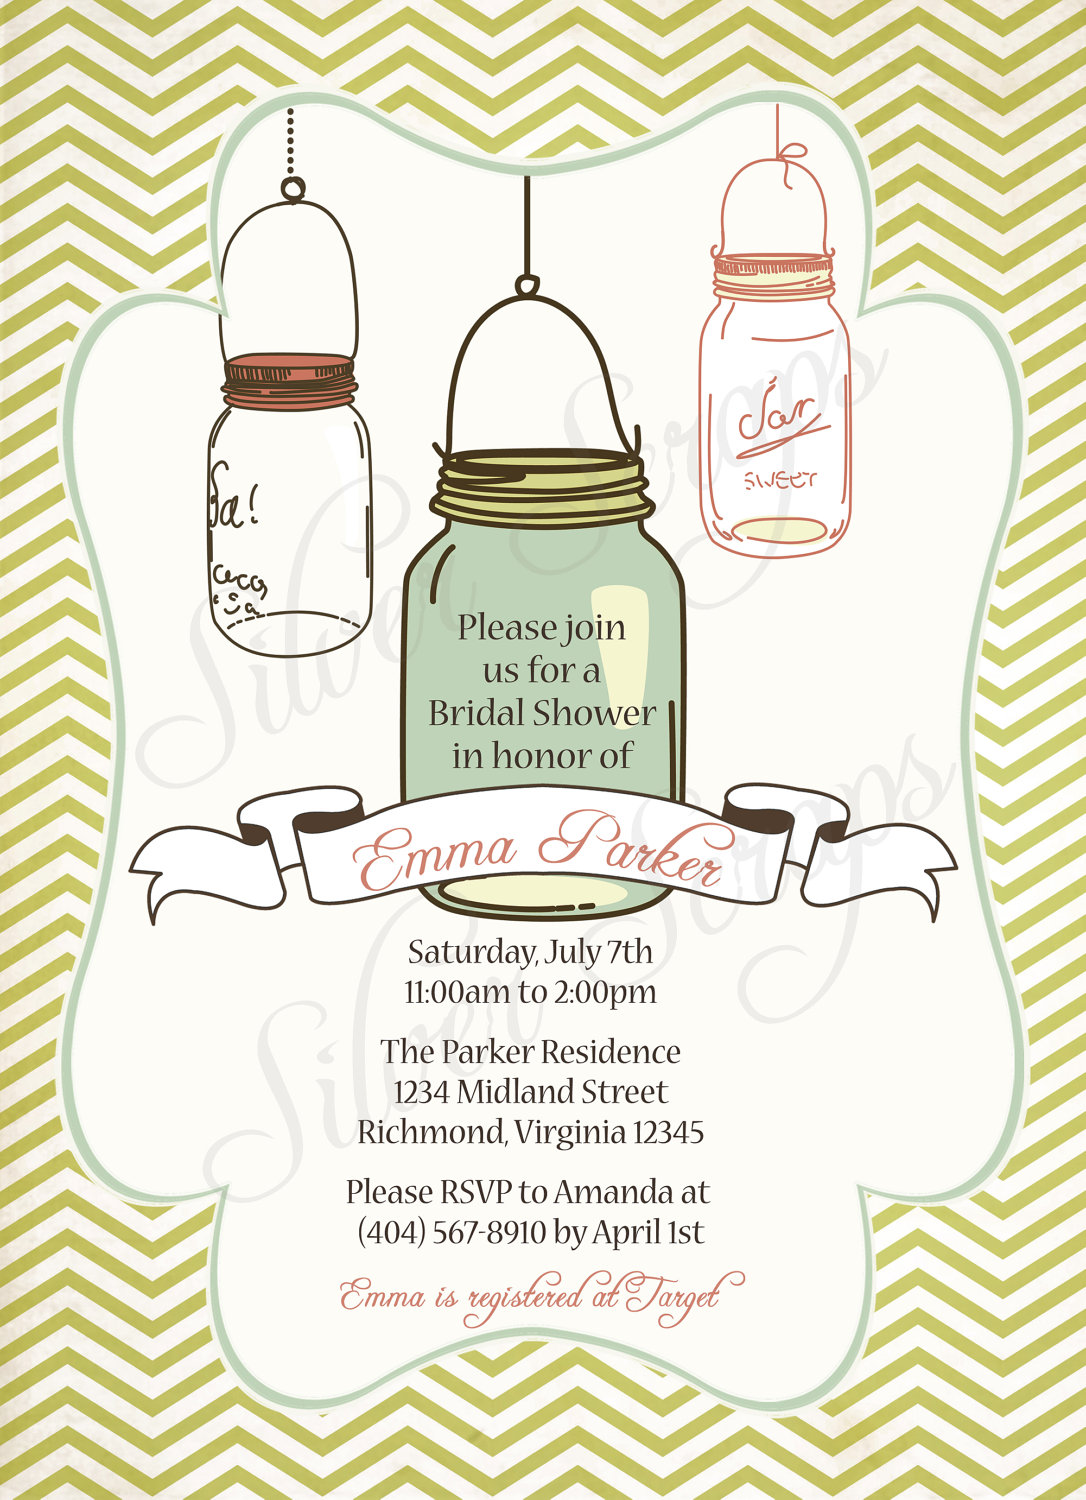 Brunch clipart wedding. Epic bridesmaids lunch invitation